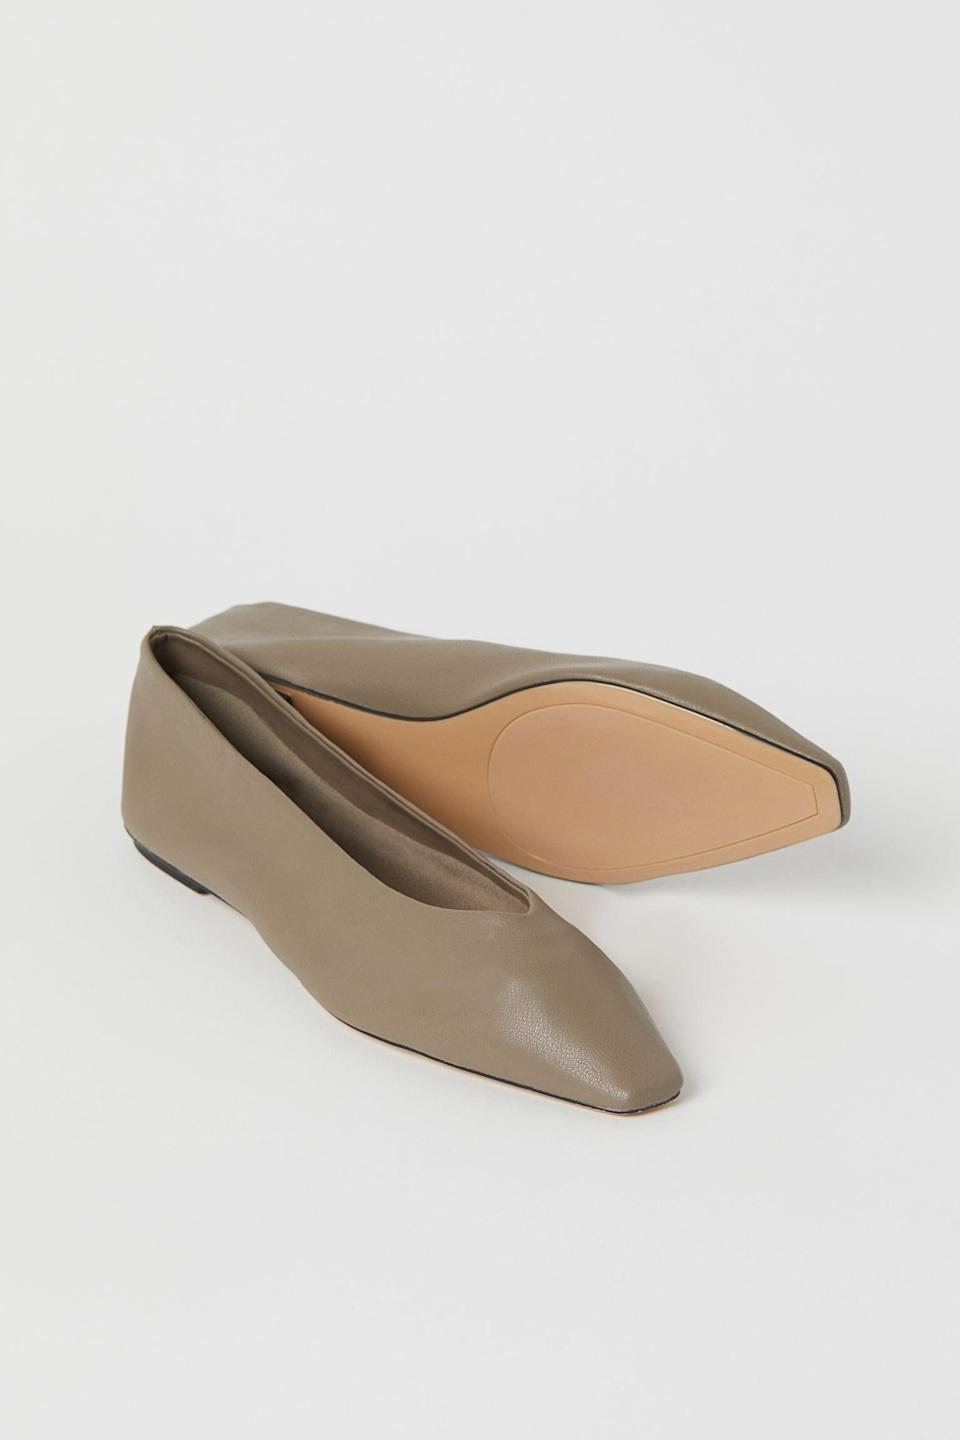 <p>The olive shade of these <span>H&amp;M Ballet Flats</span> ($16, originally $25) make them extremely versatile.</p>